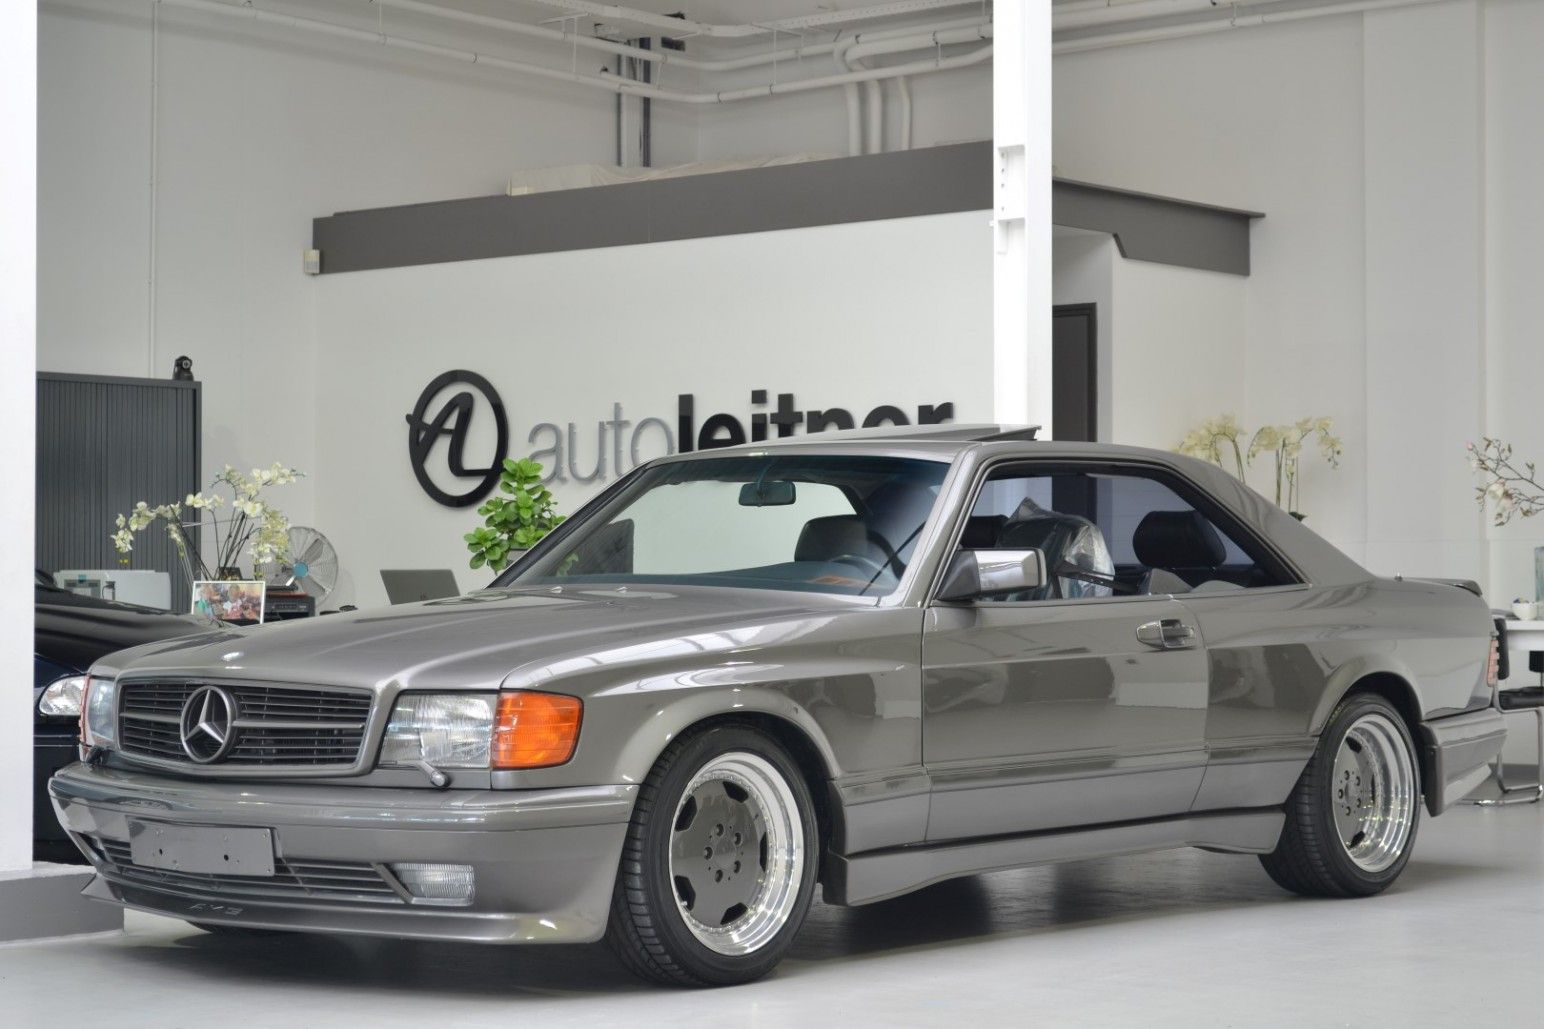 1990 mercedes 560 sec amg 6 0 widebody w126 antracietgrijs for Mercedes benz 560 sec amg for sale